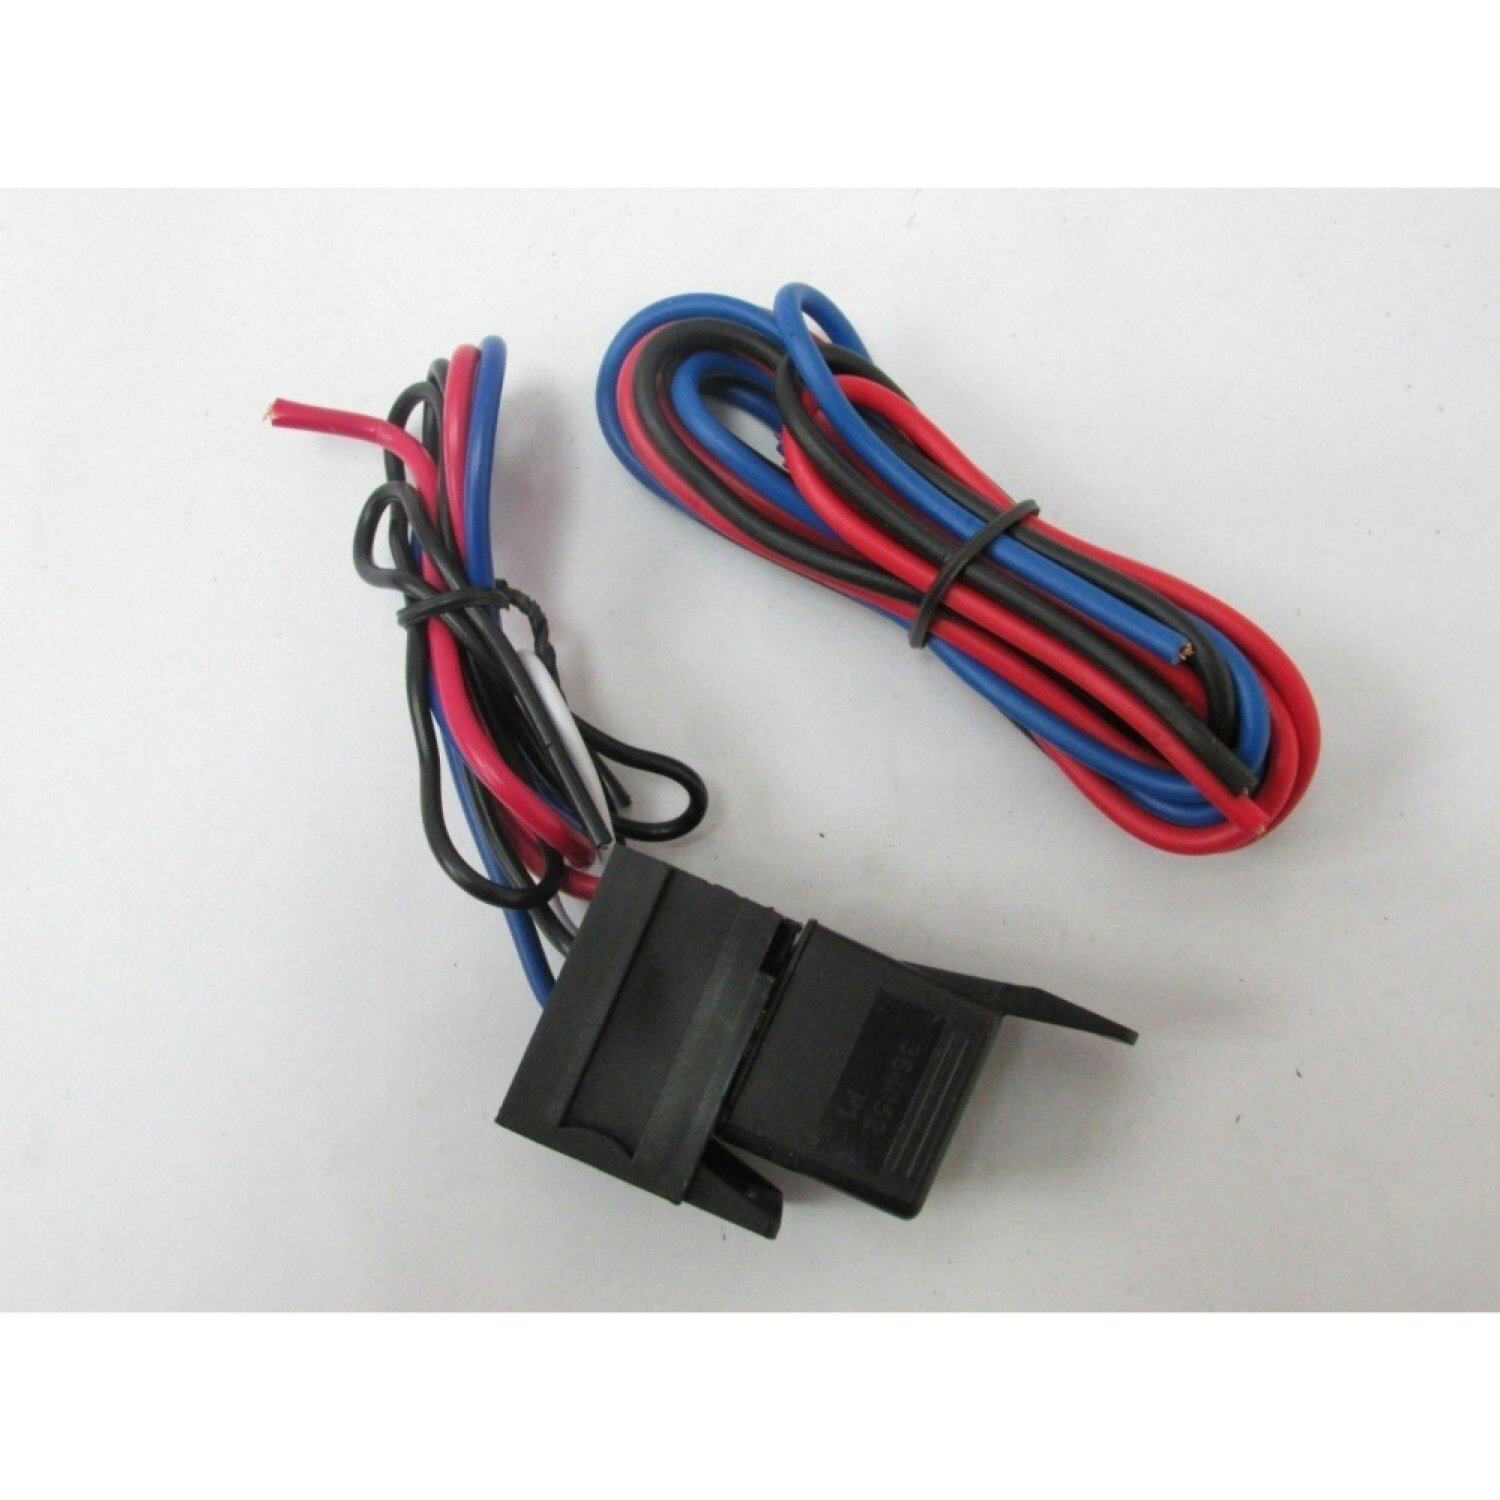 Car Battery Charger For Sale Jump Starter Online Brands Prices Switch Panel Engine Start Push Button How To Wire A Lanji Ignition Carbon Racing Kits 12v